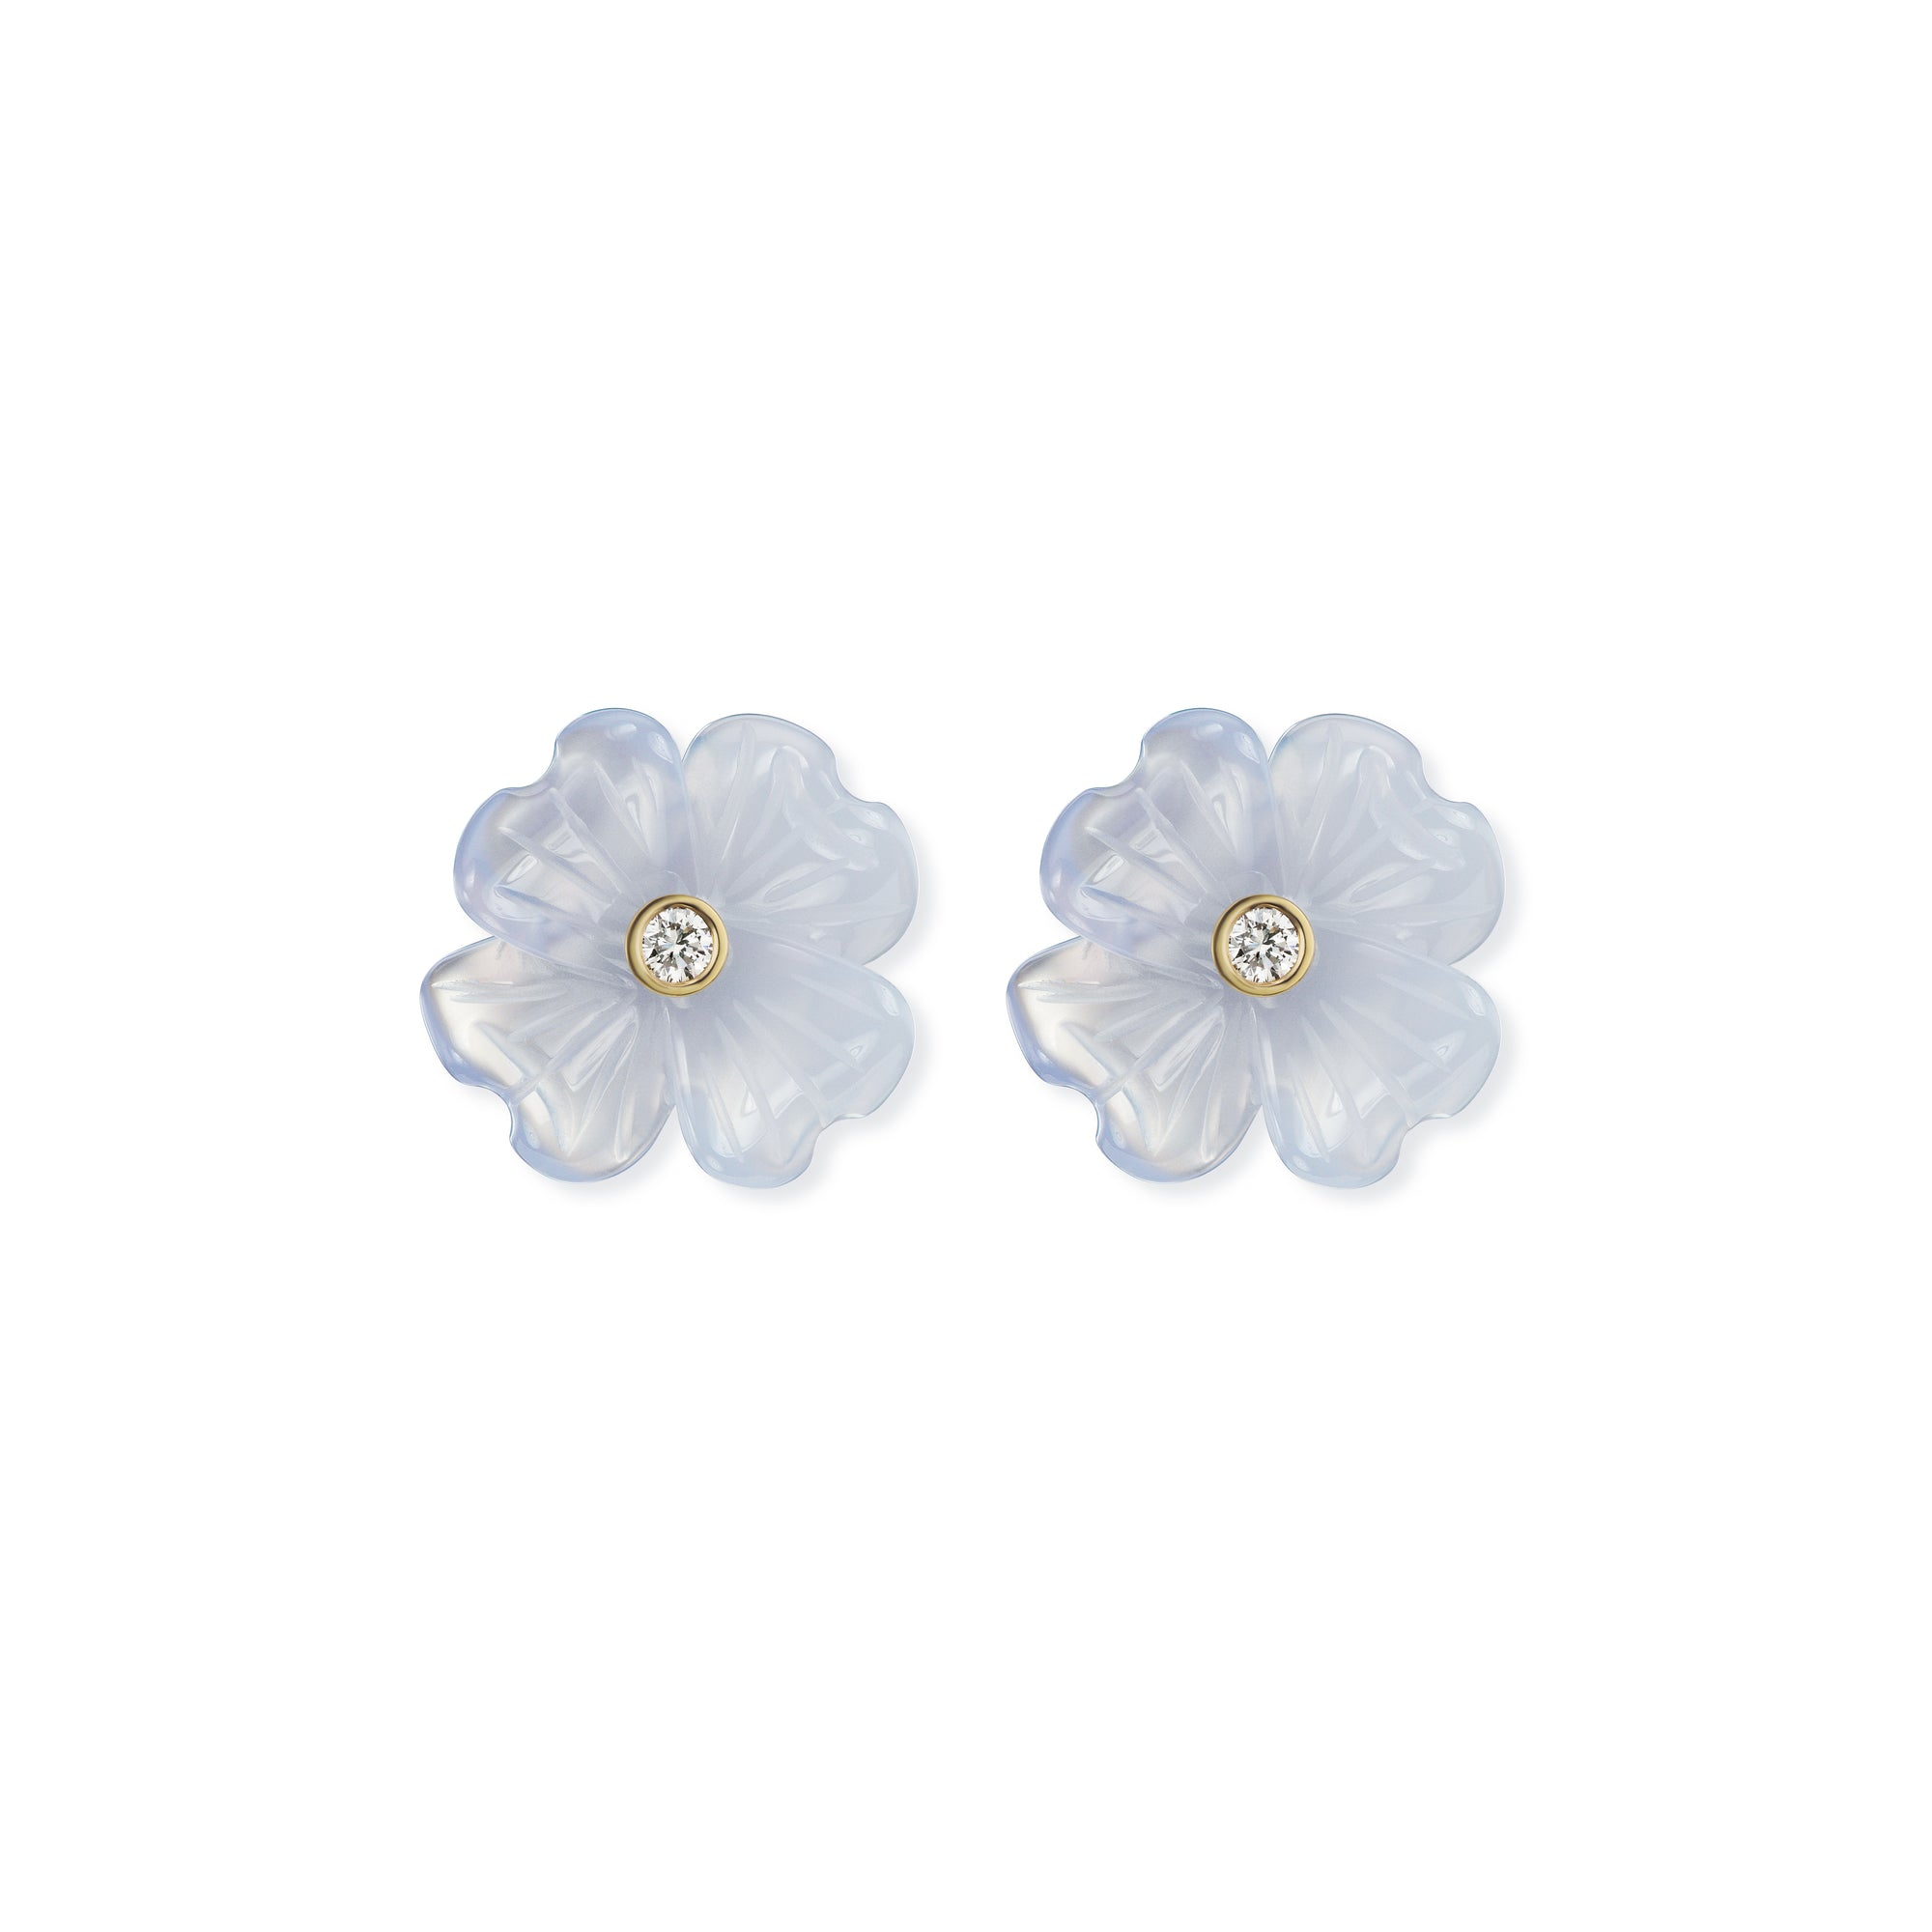 Small Clover Stud Earrings